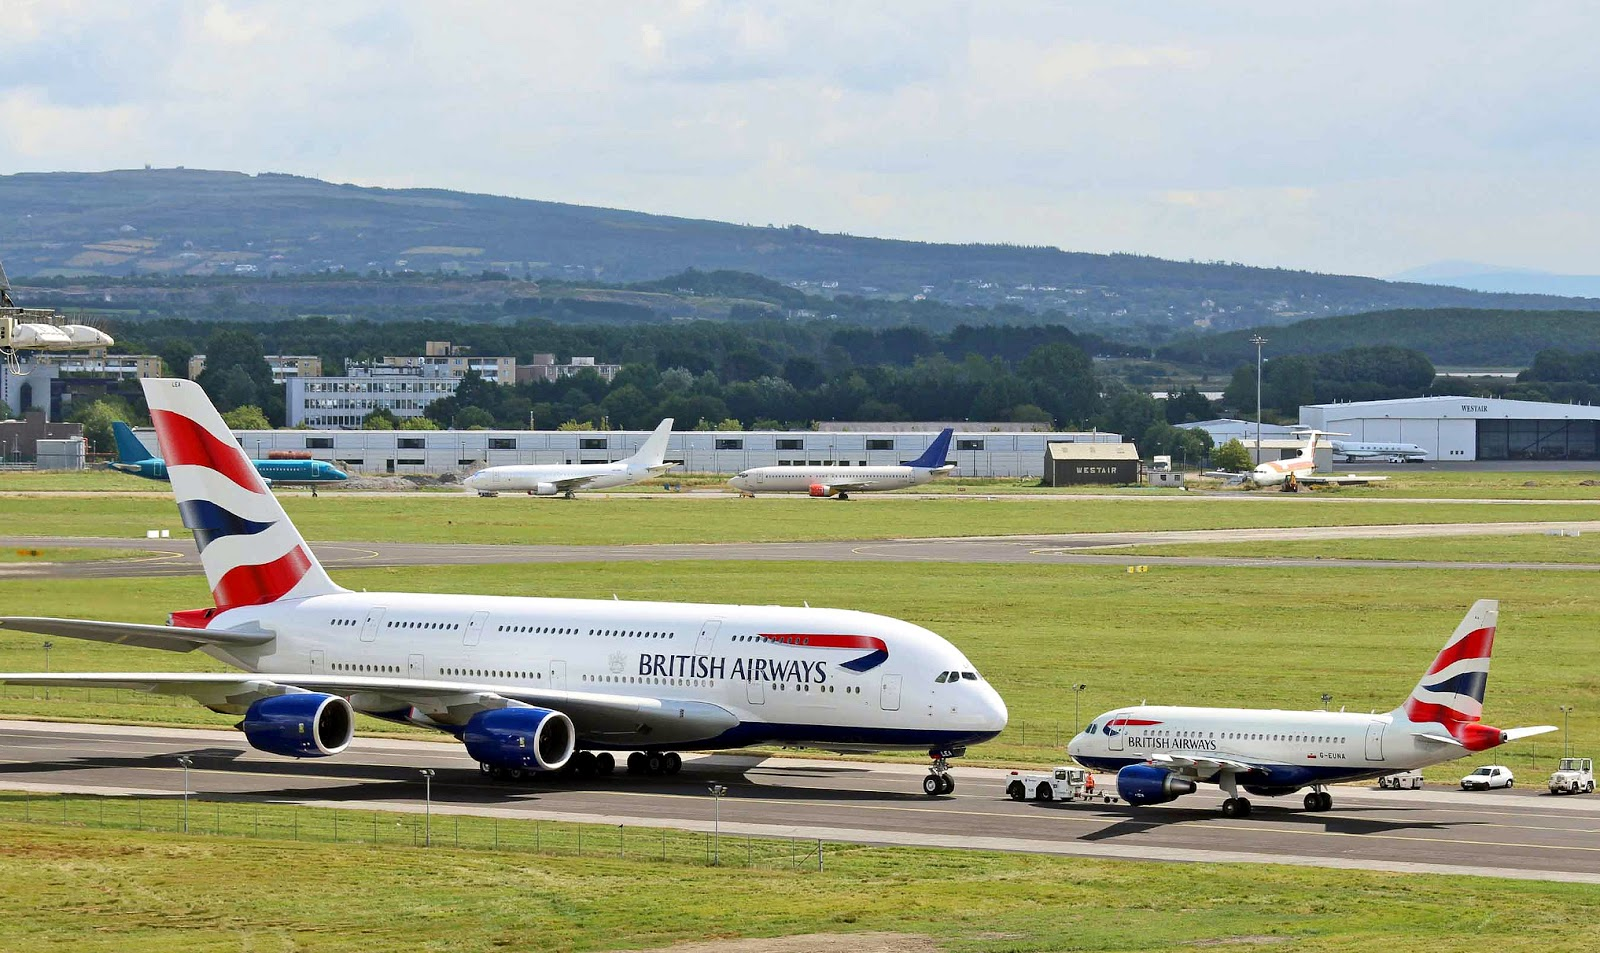 Airbus A380 Vs A318 Size Comparison Nose To Nose